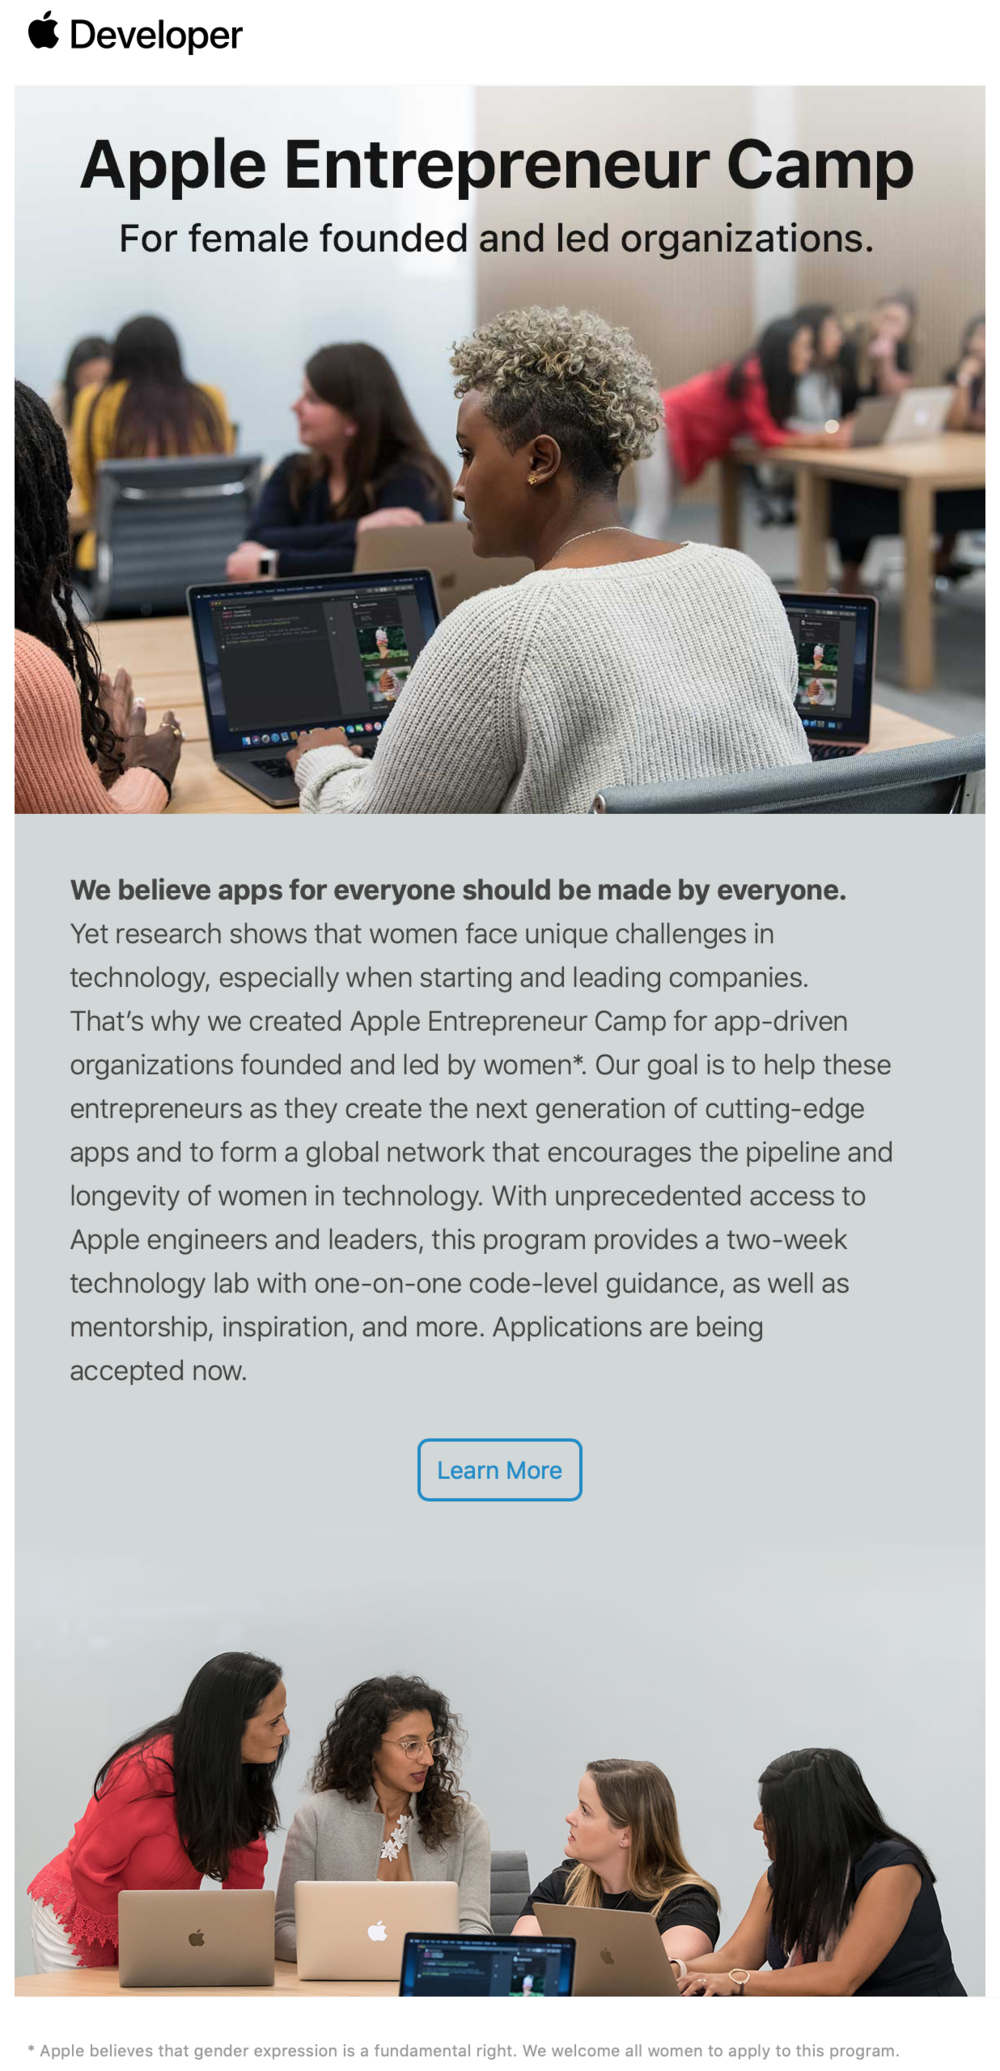 AppleEntrepreneurCamp.png